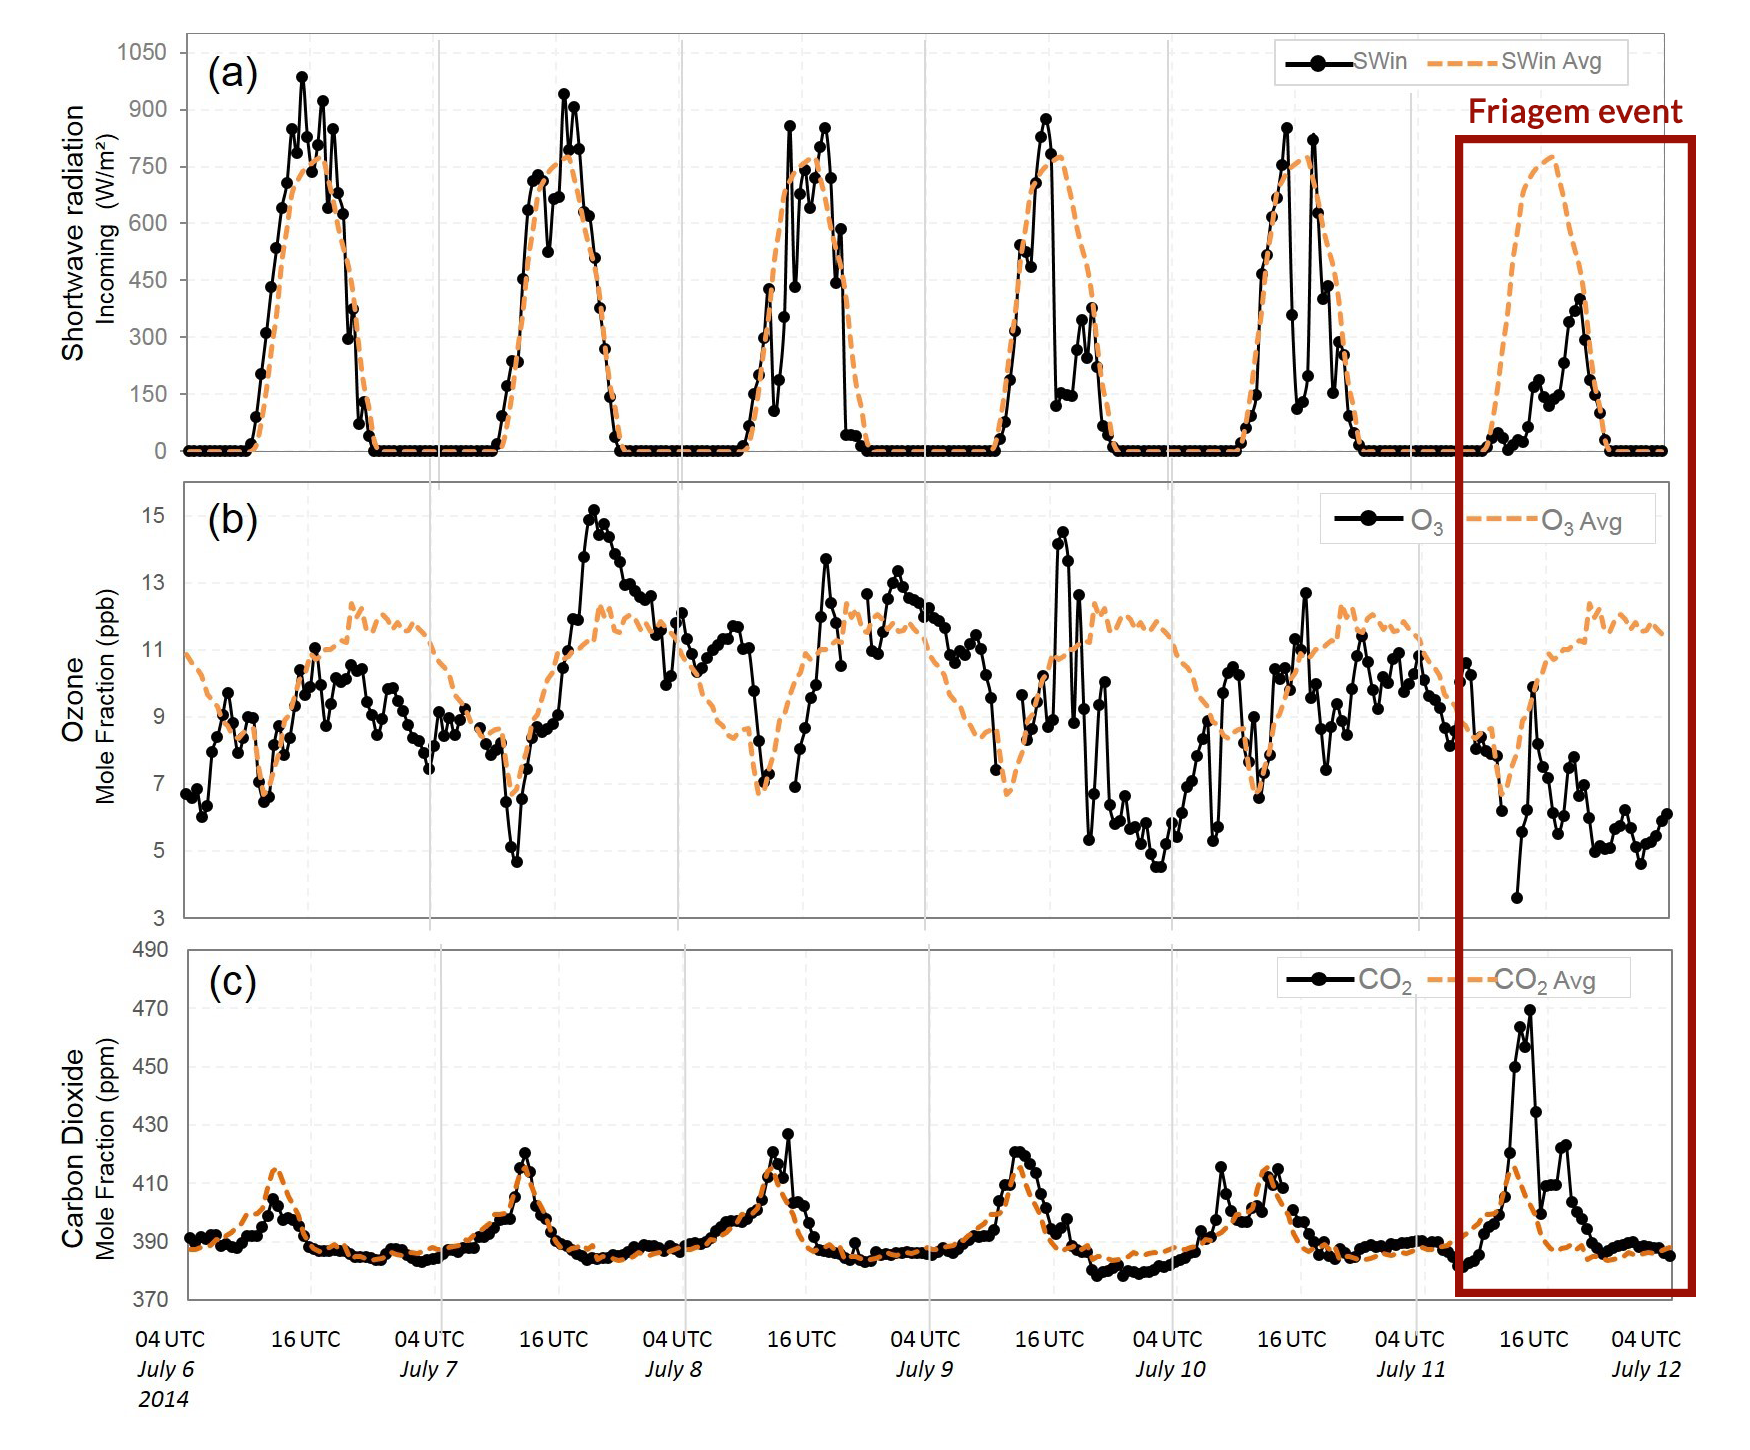 Figure altered from Camarinha-Neto et al. (2021). It shows the radiation (top), ozone concentration (middle) and CO2 concentration (bottom) in the days leading up to and during the Friagem event.